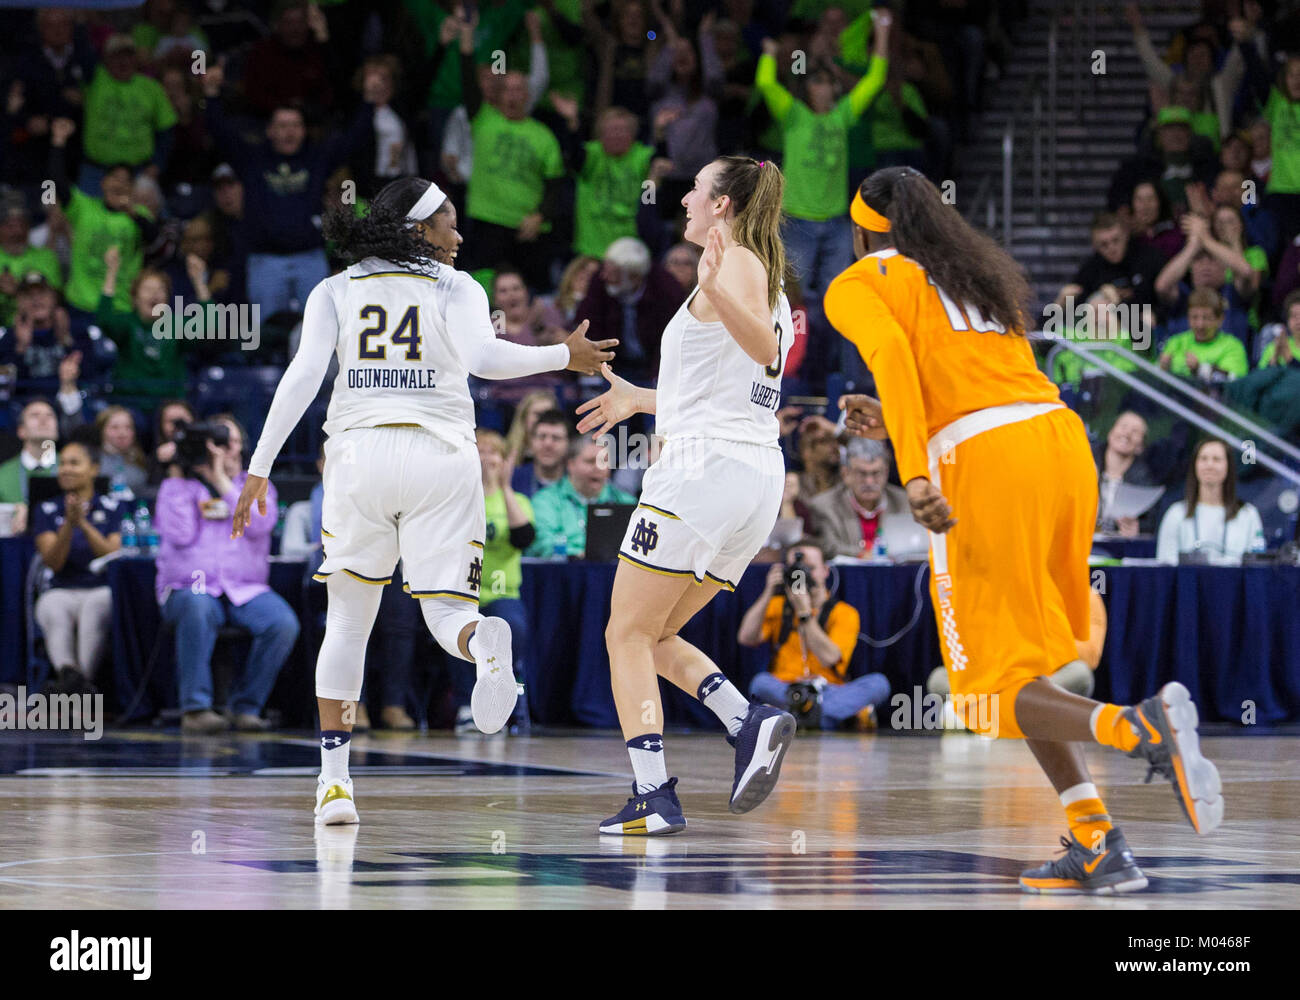 c99be2776f30 Notre Dame guard Arike Ogunbowale (24) and Notre Dame guard Marina Mabrey  (3) celebrate during NCAA Basketball game action between the Notre Dame  Fighting ...